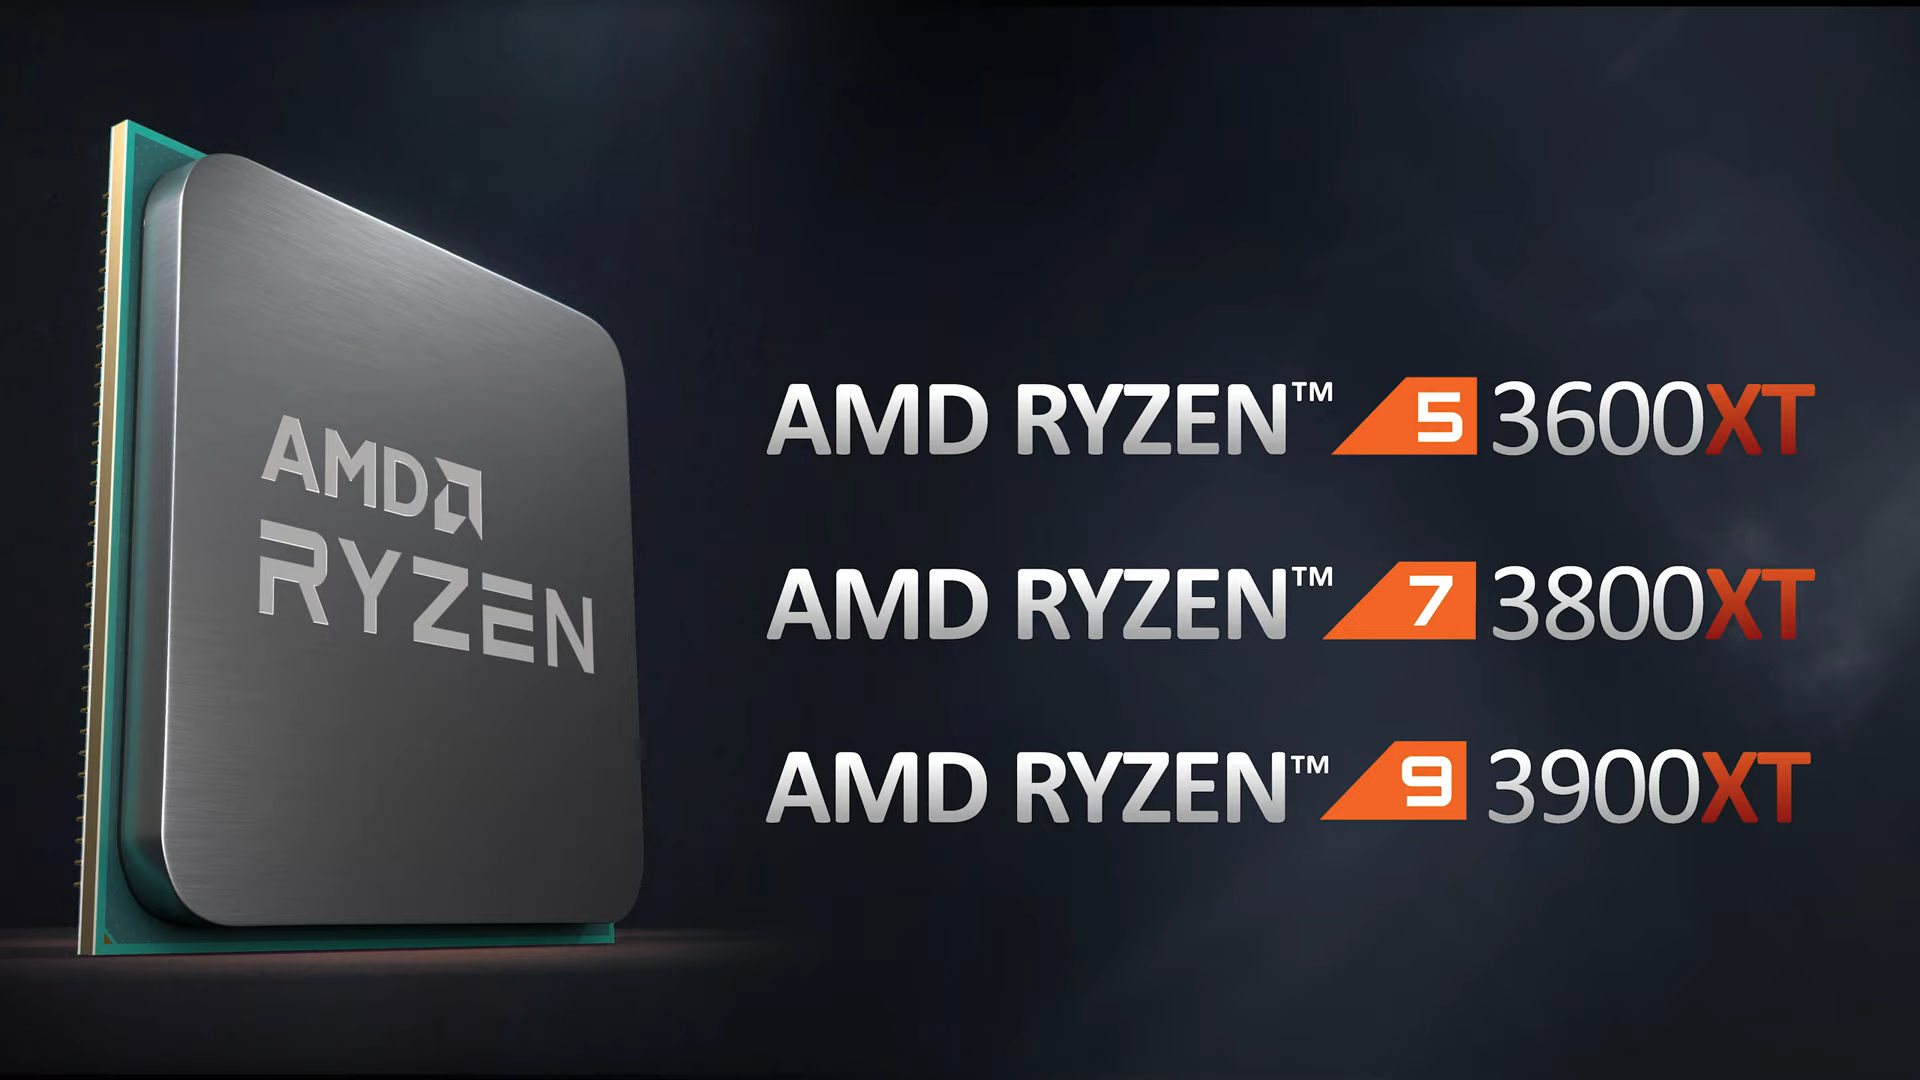 Amd Announces Ryzen 9 3900xt Ryzen 7 3800xt And Ryzen 5 3600xt Processors Alongside A520 Chipset Gadget Pilipinas